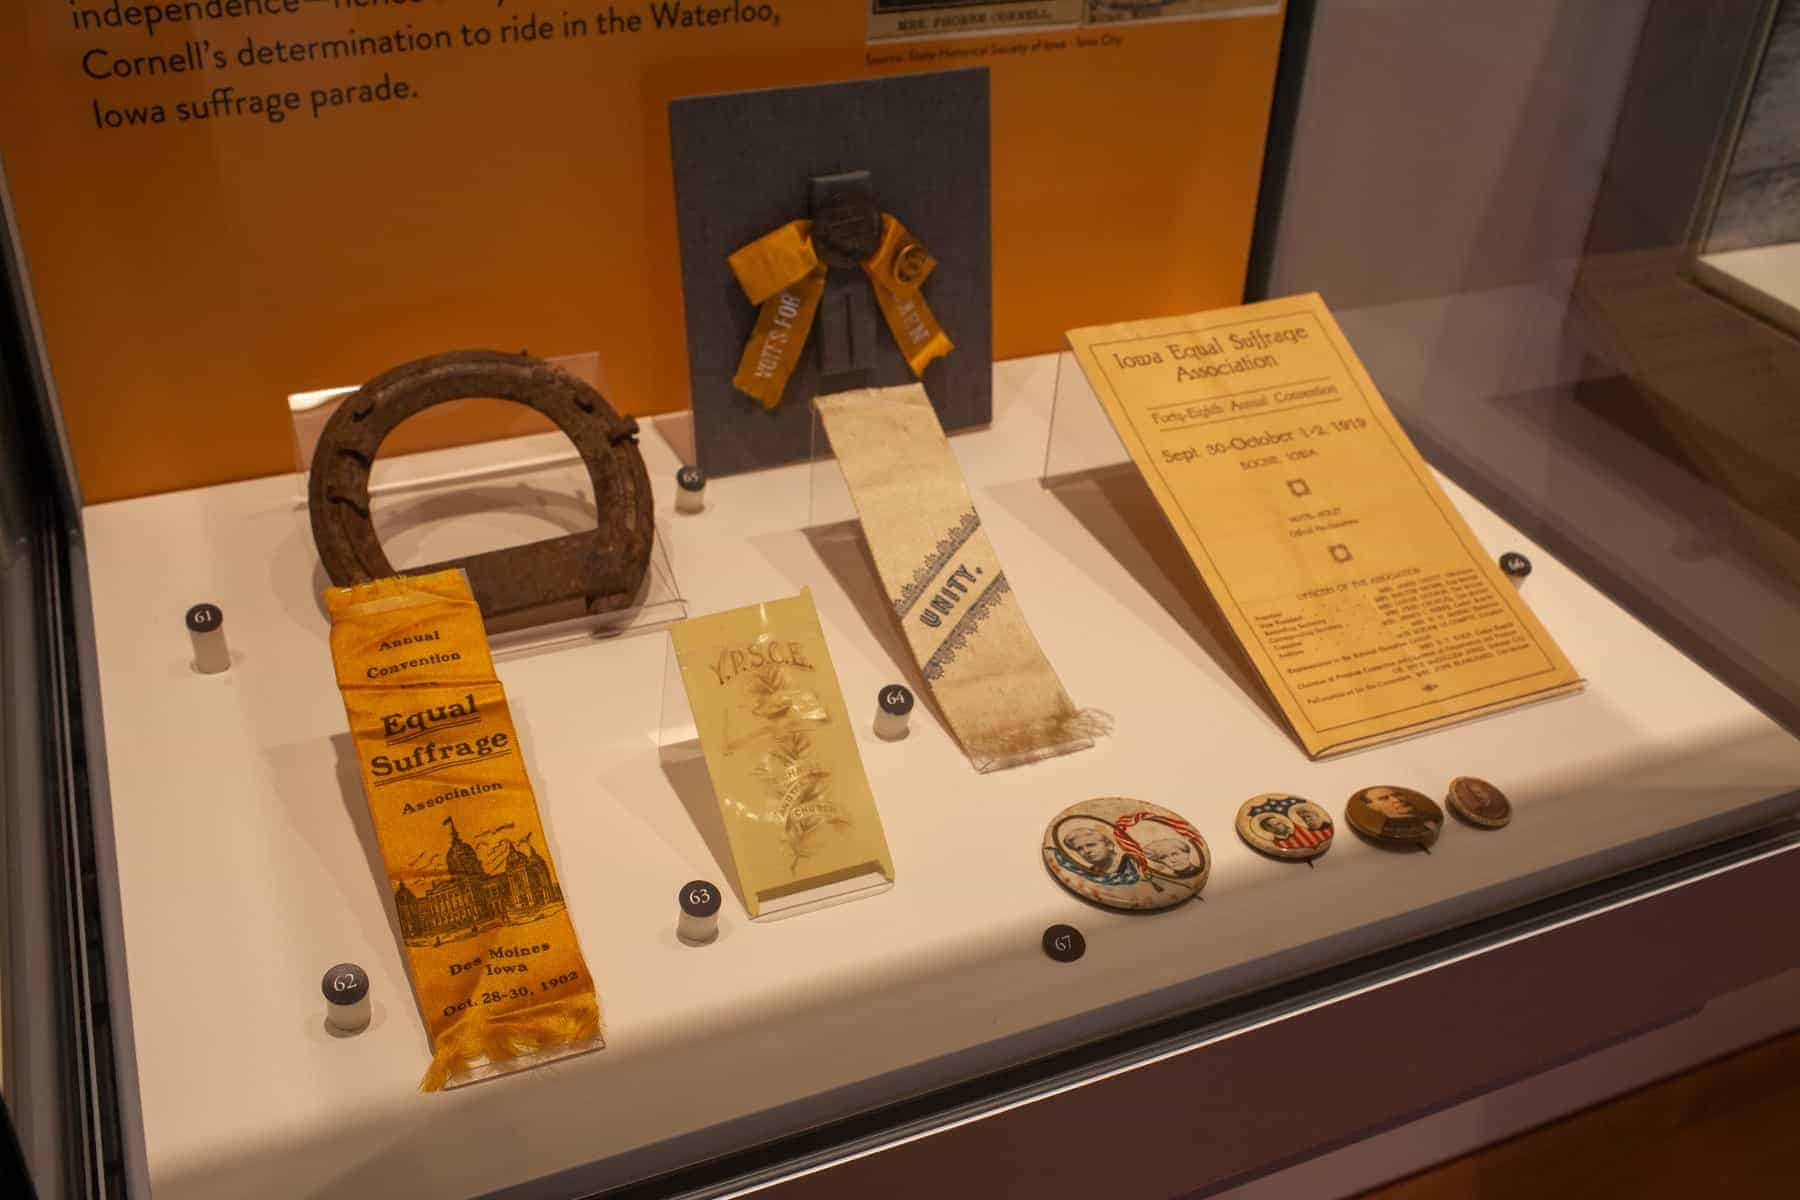 This case has several small items displayed together. Assorted buttons, ribbons for pinning to clothing, a rusty horseshoe, and a flat paper convention program from 1919 are on display.